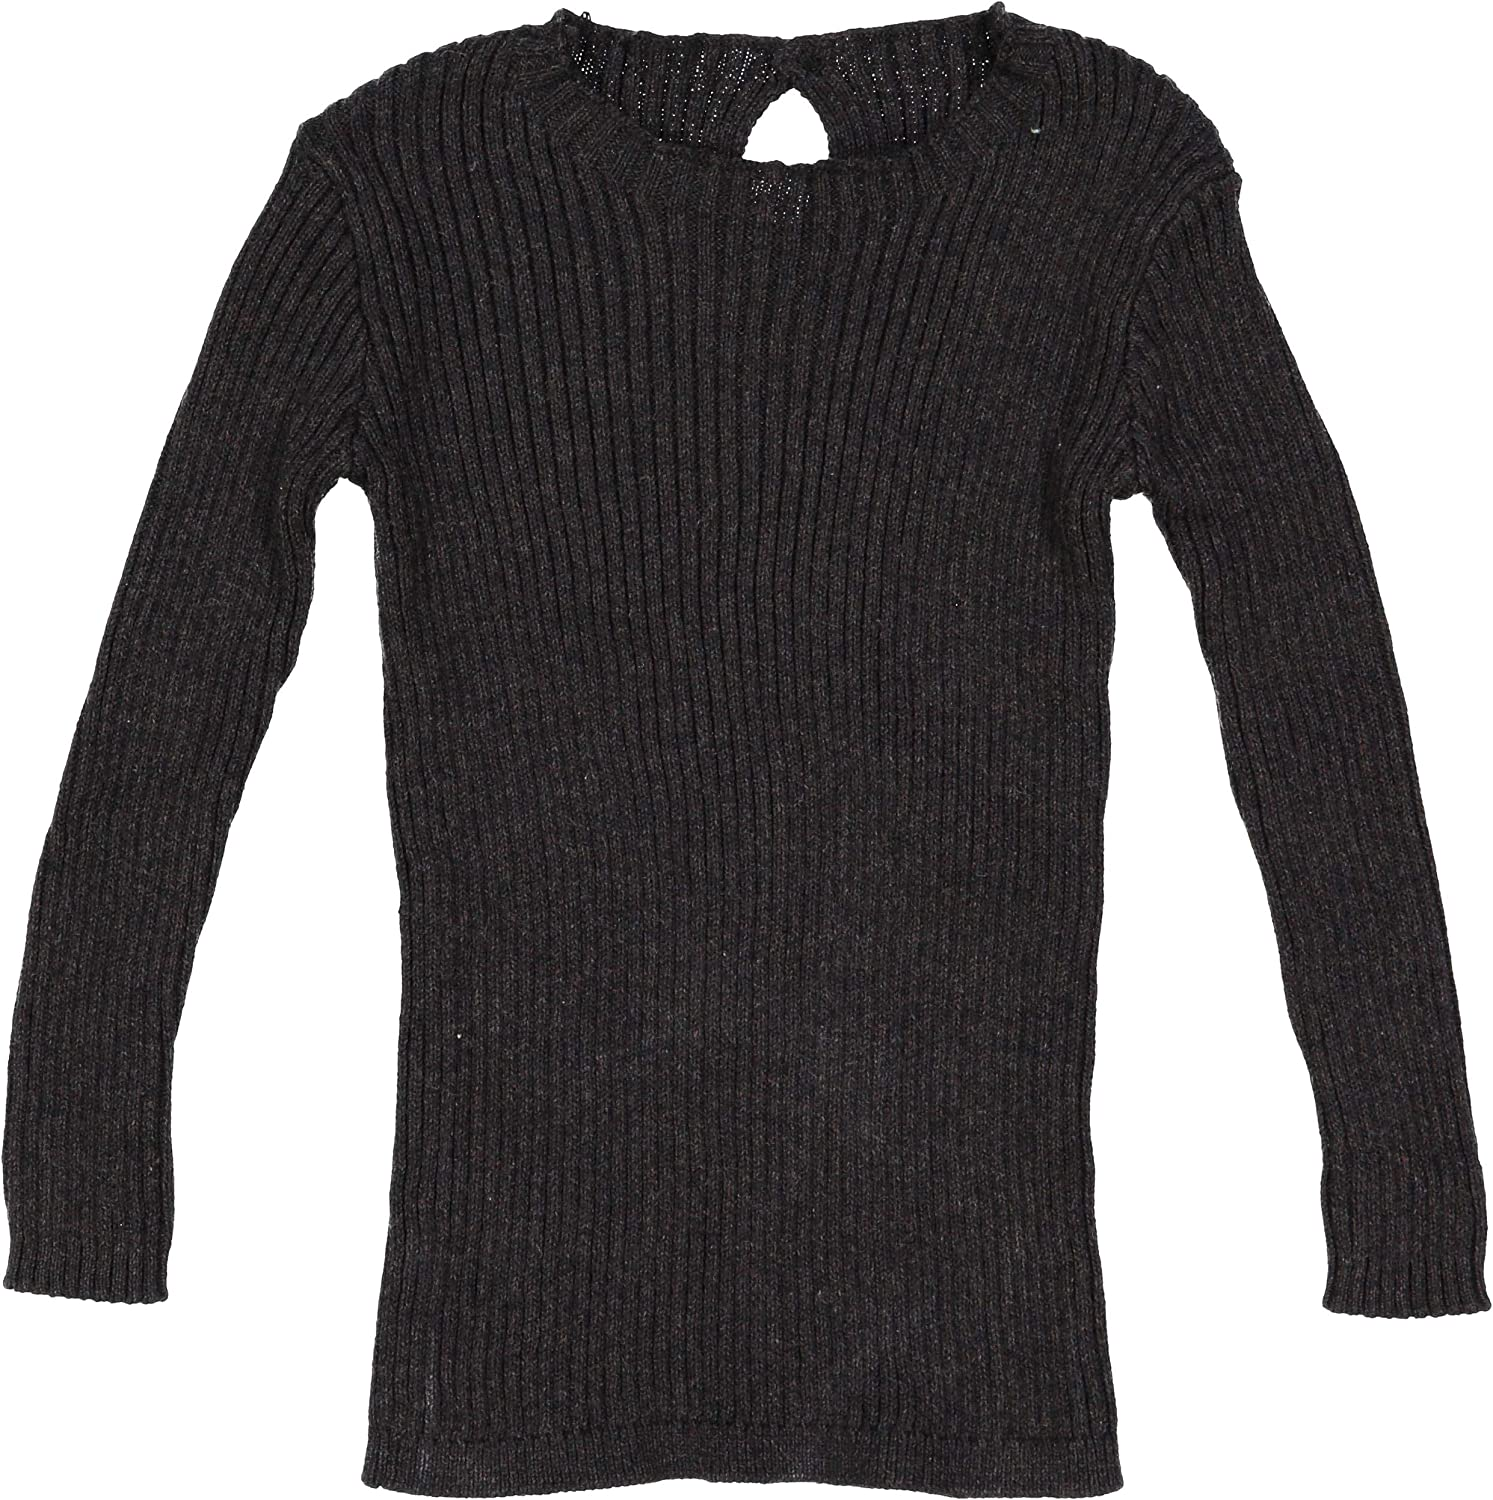 Analogie by Lil Legs Baby Boys Girls Unisex Winter Ribbed Knit Long Sleeve T-Shirt Sweater